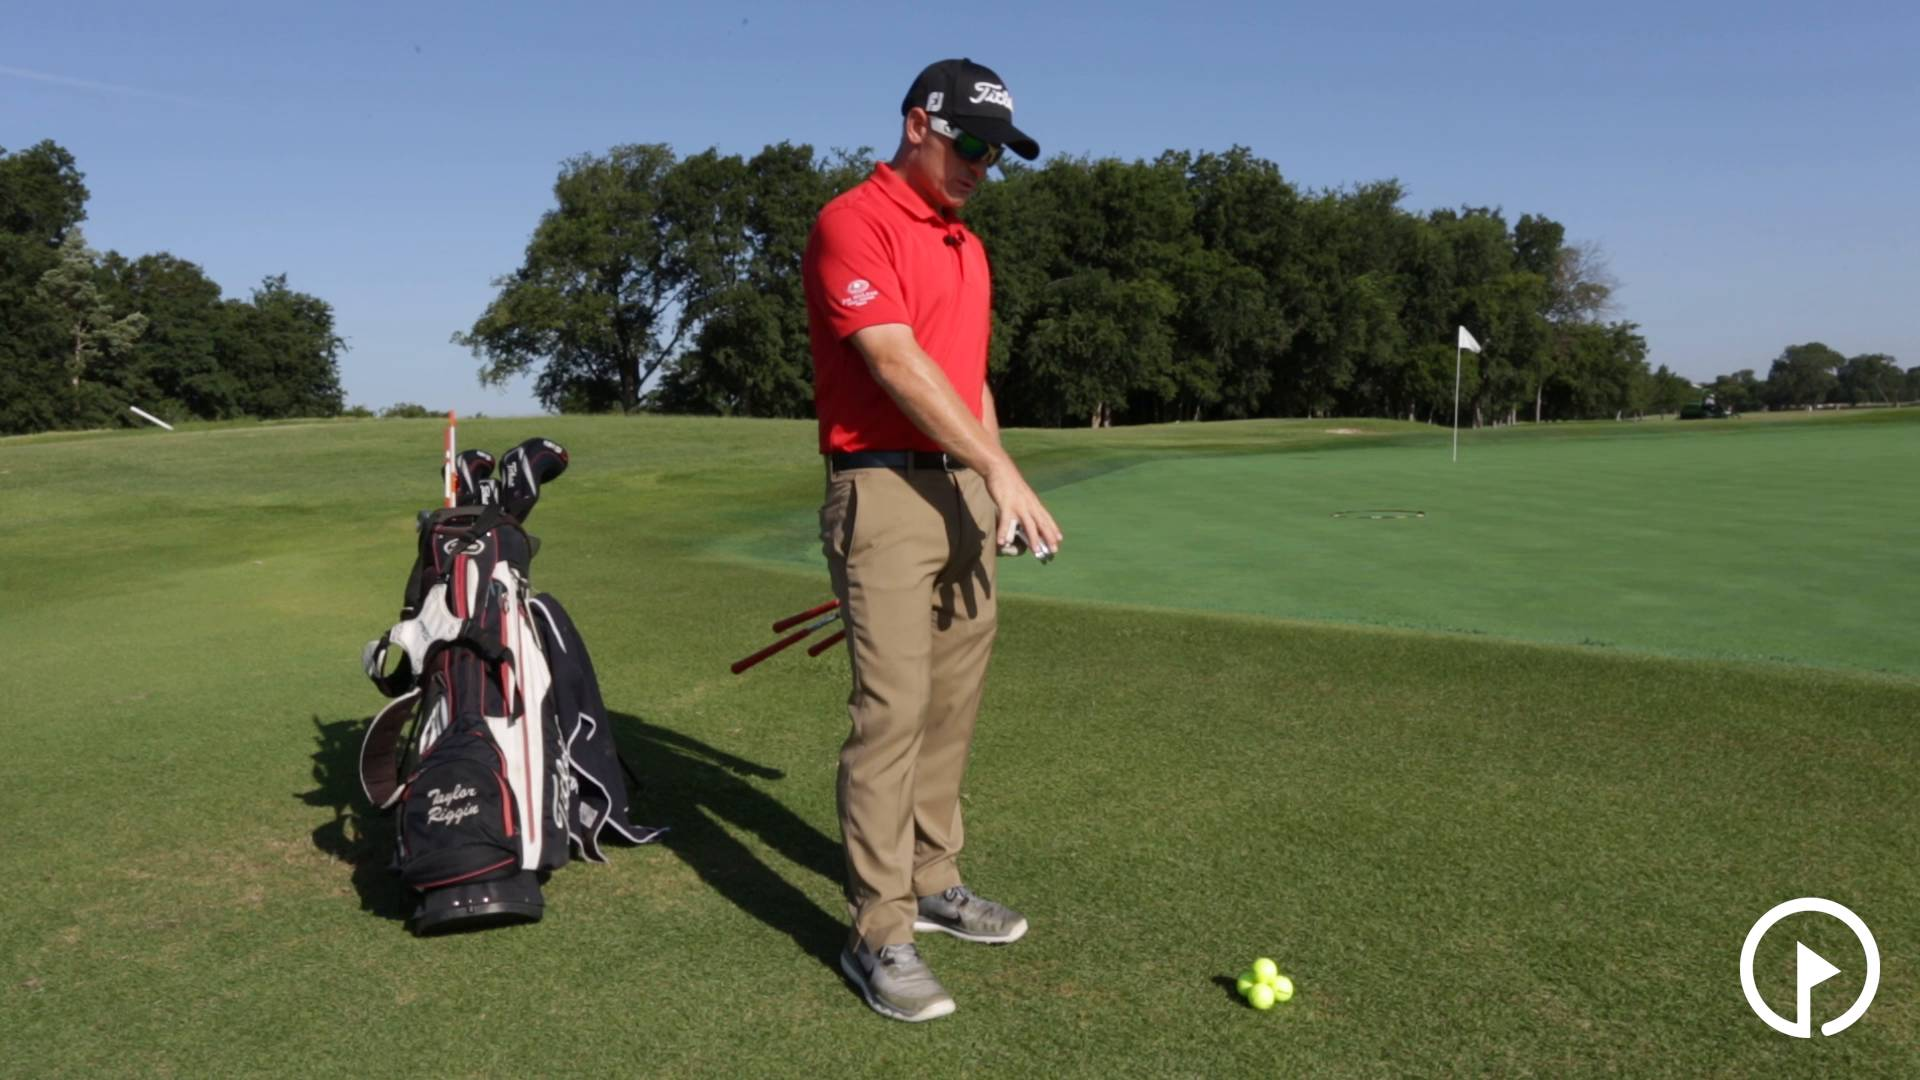 On Course Strategy: Develop a 3 Club System